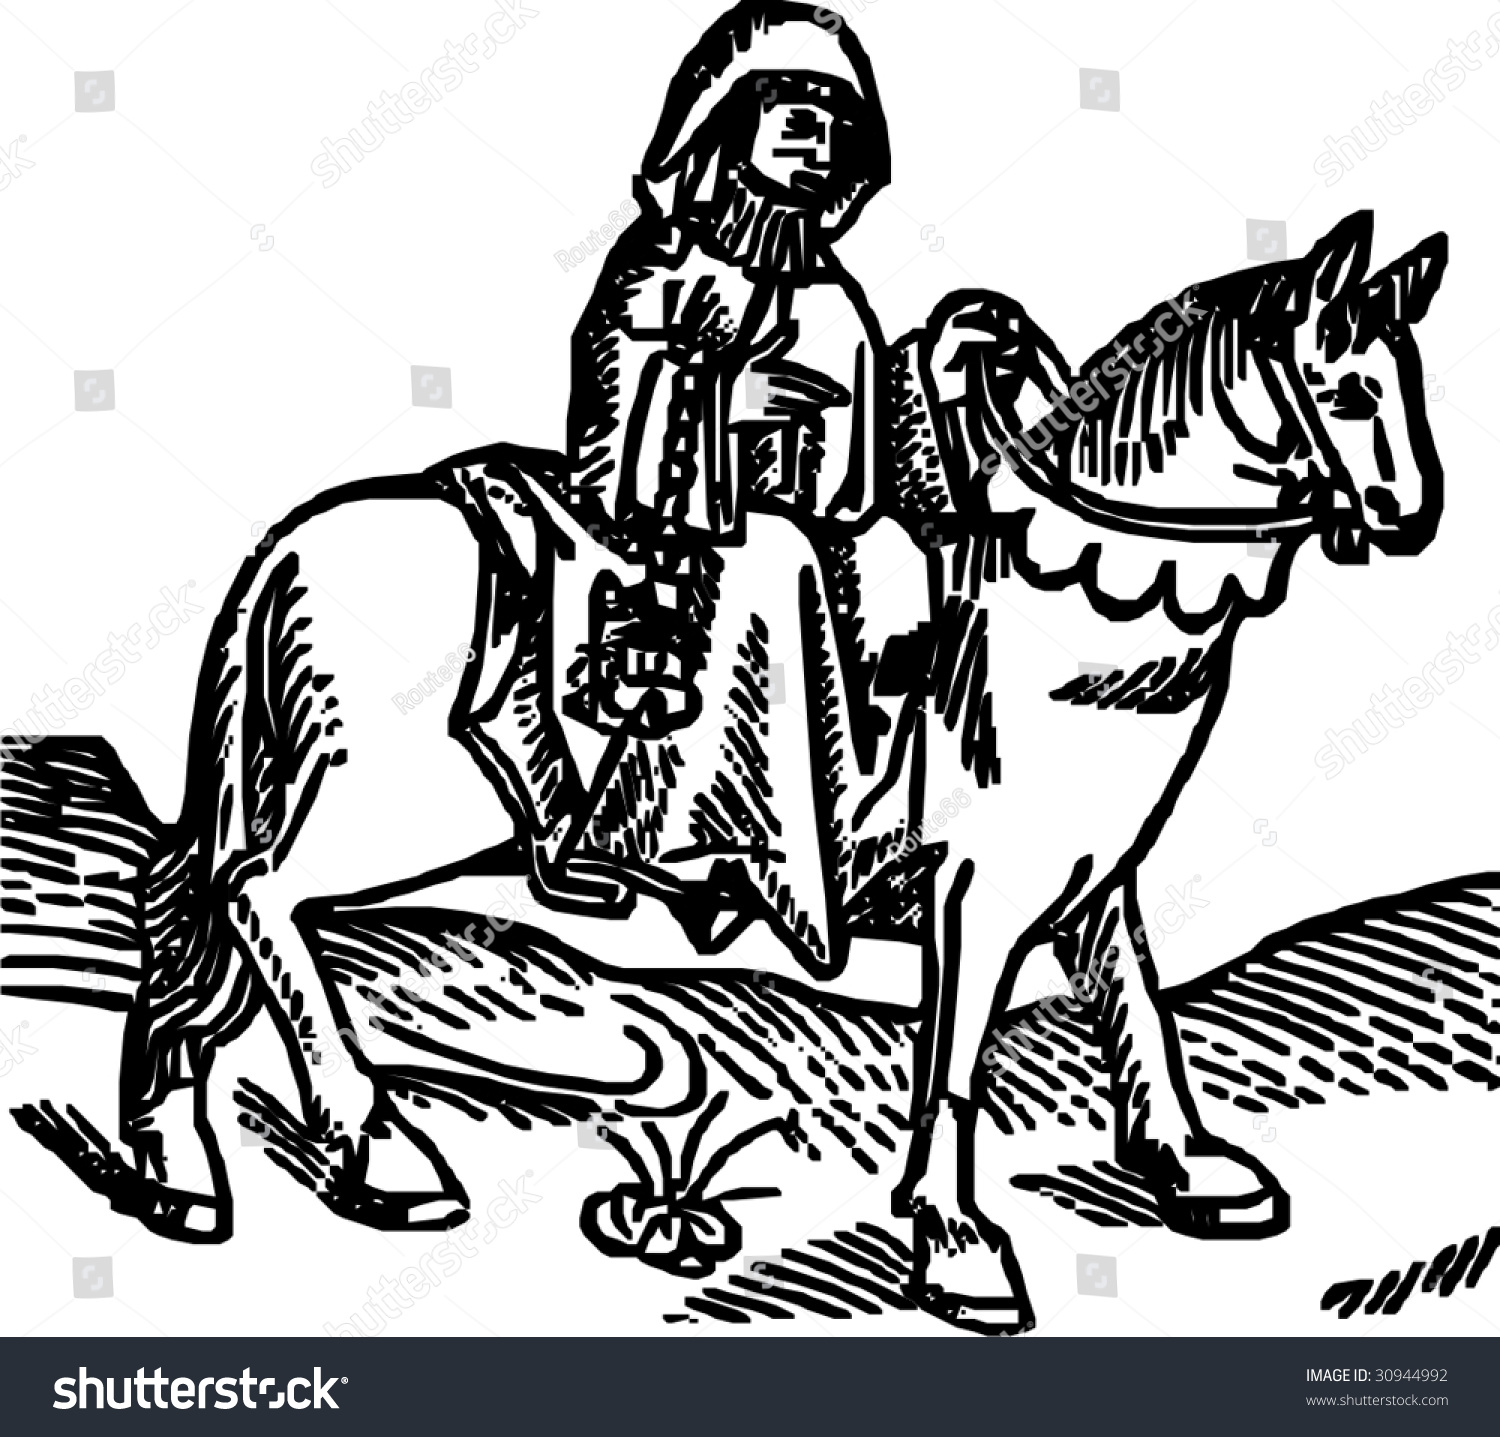 the prioress tale essay Canterbury tales essay: the character of the prioress 795 words | 4 pages the character of the prioress in the canterbury tales in the canterbury tales, chaucer writes a prologue in which characters are given at face value.